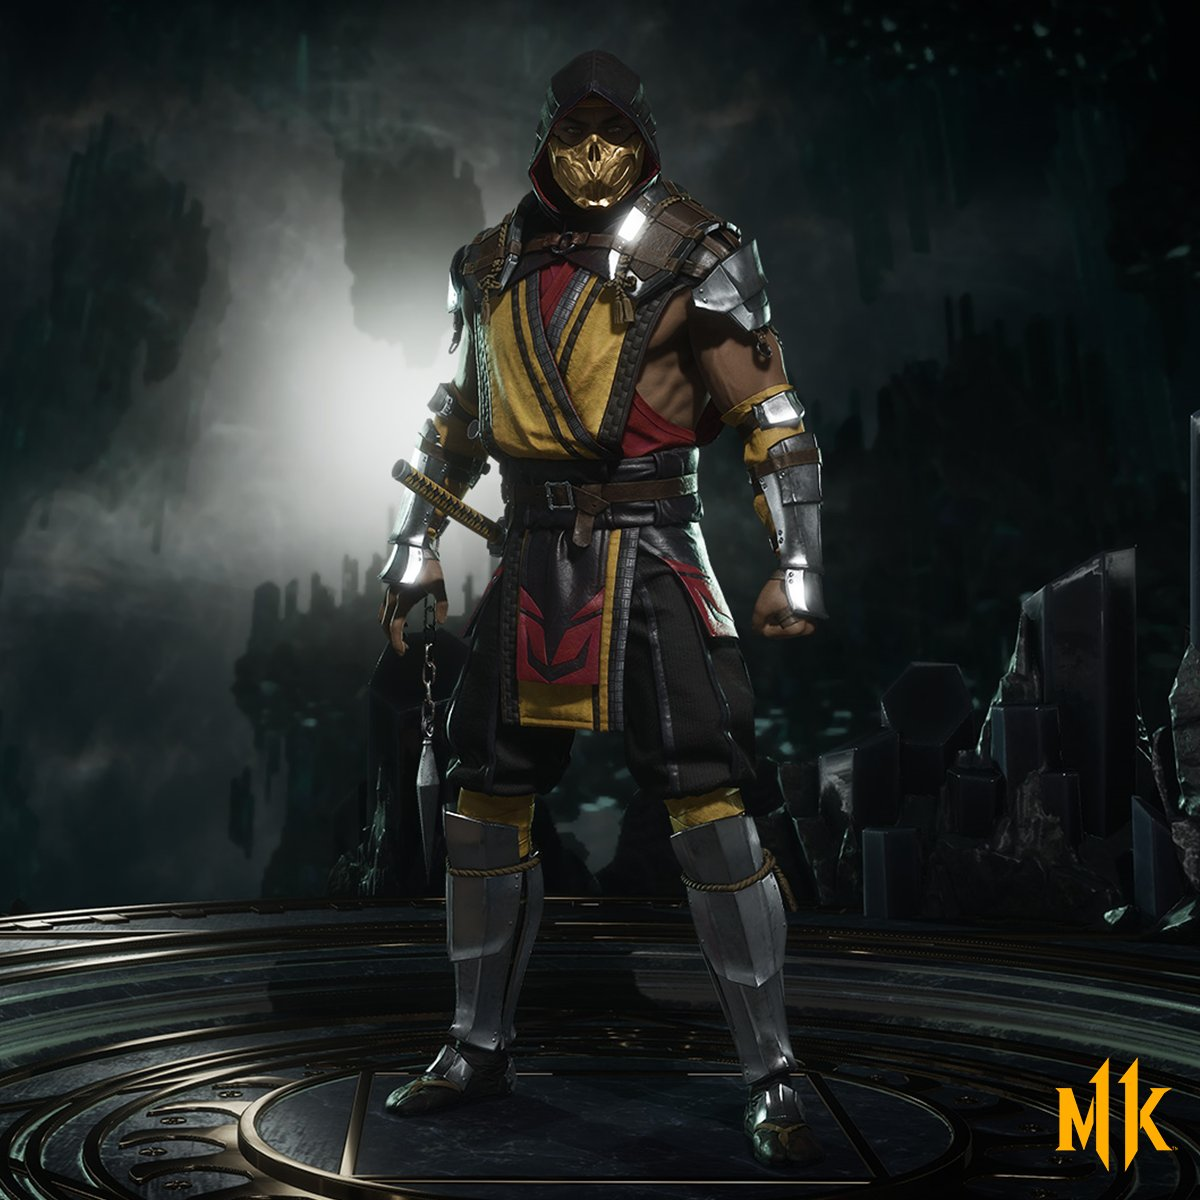 Mortal Kombat 11 Scorpion render 1 out of 2 image gallery